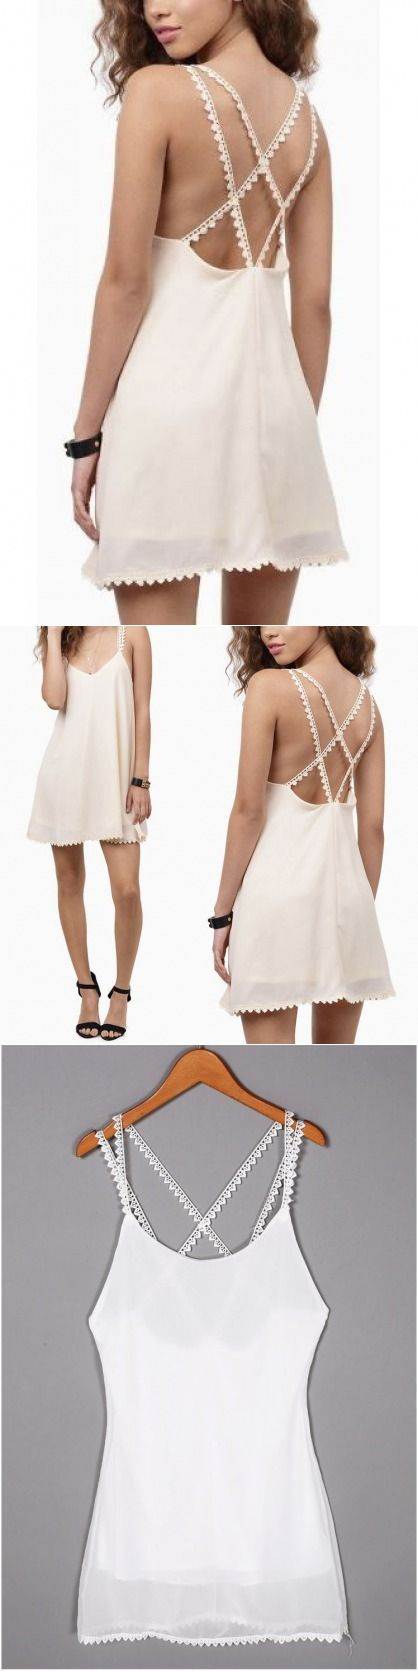 """Sexy Birthday Celebration Clothing Holiday Wife Bodycon Clothing Bedroom Tank Top Classic """"Hot Nun Fancy Dress, Adult Females Jumpsuits"""" Silk Chubby Valentines Tunic Women Halter Top Short Sexy Back Skimpy Low Cut Babes Cotton White Skin Tight Ladie Pajama Bedroom Evening Sweetheart Neckline Tops Casual."""